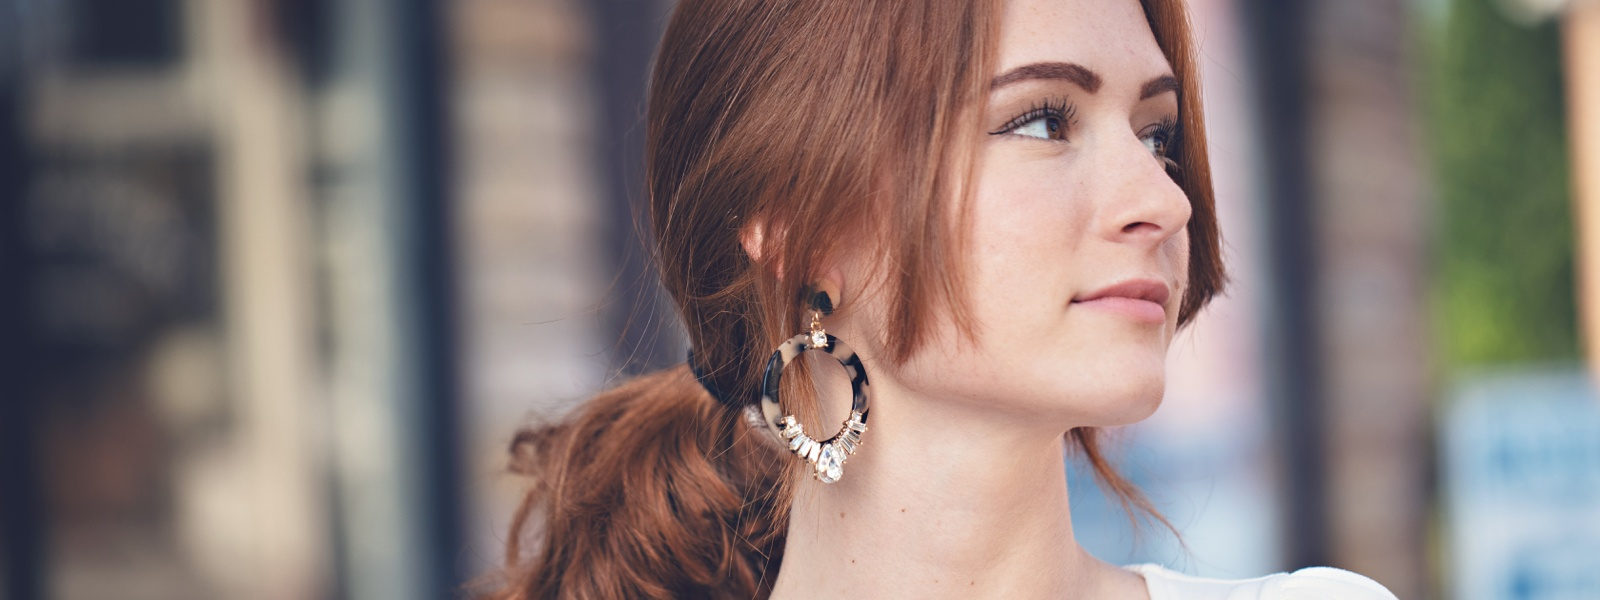 Woman wearing Off Park earrings